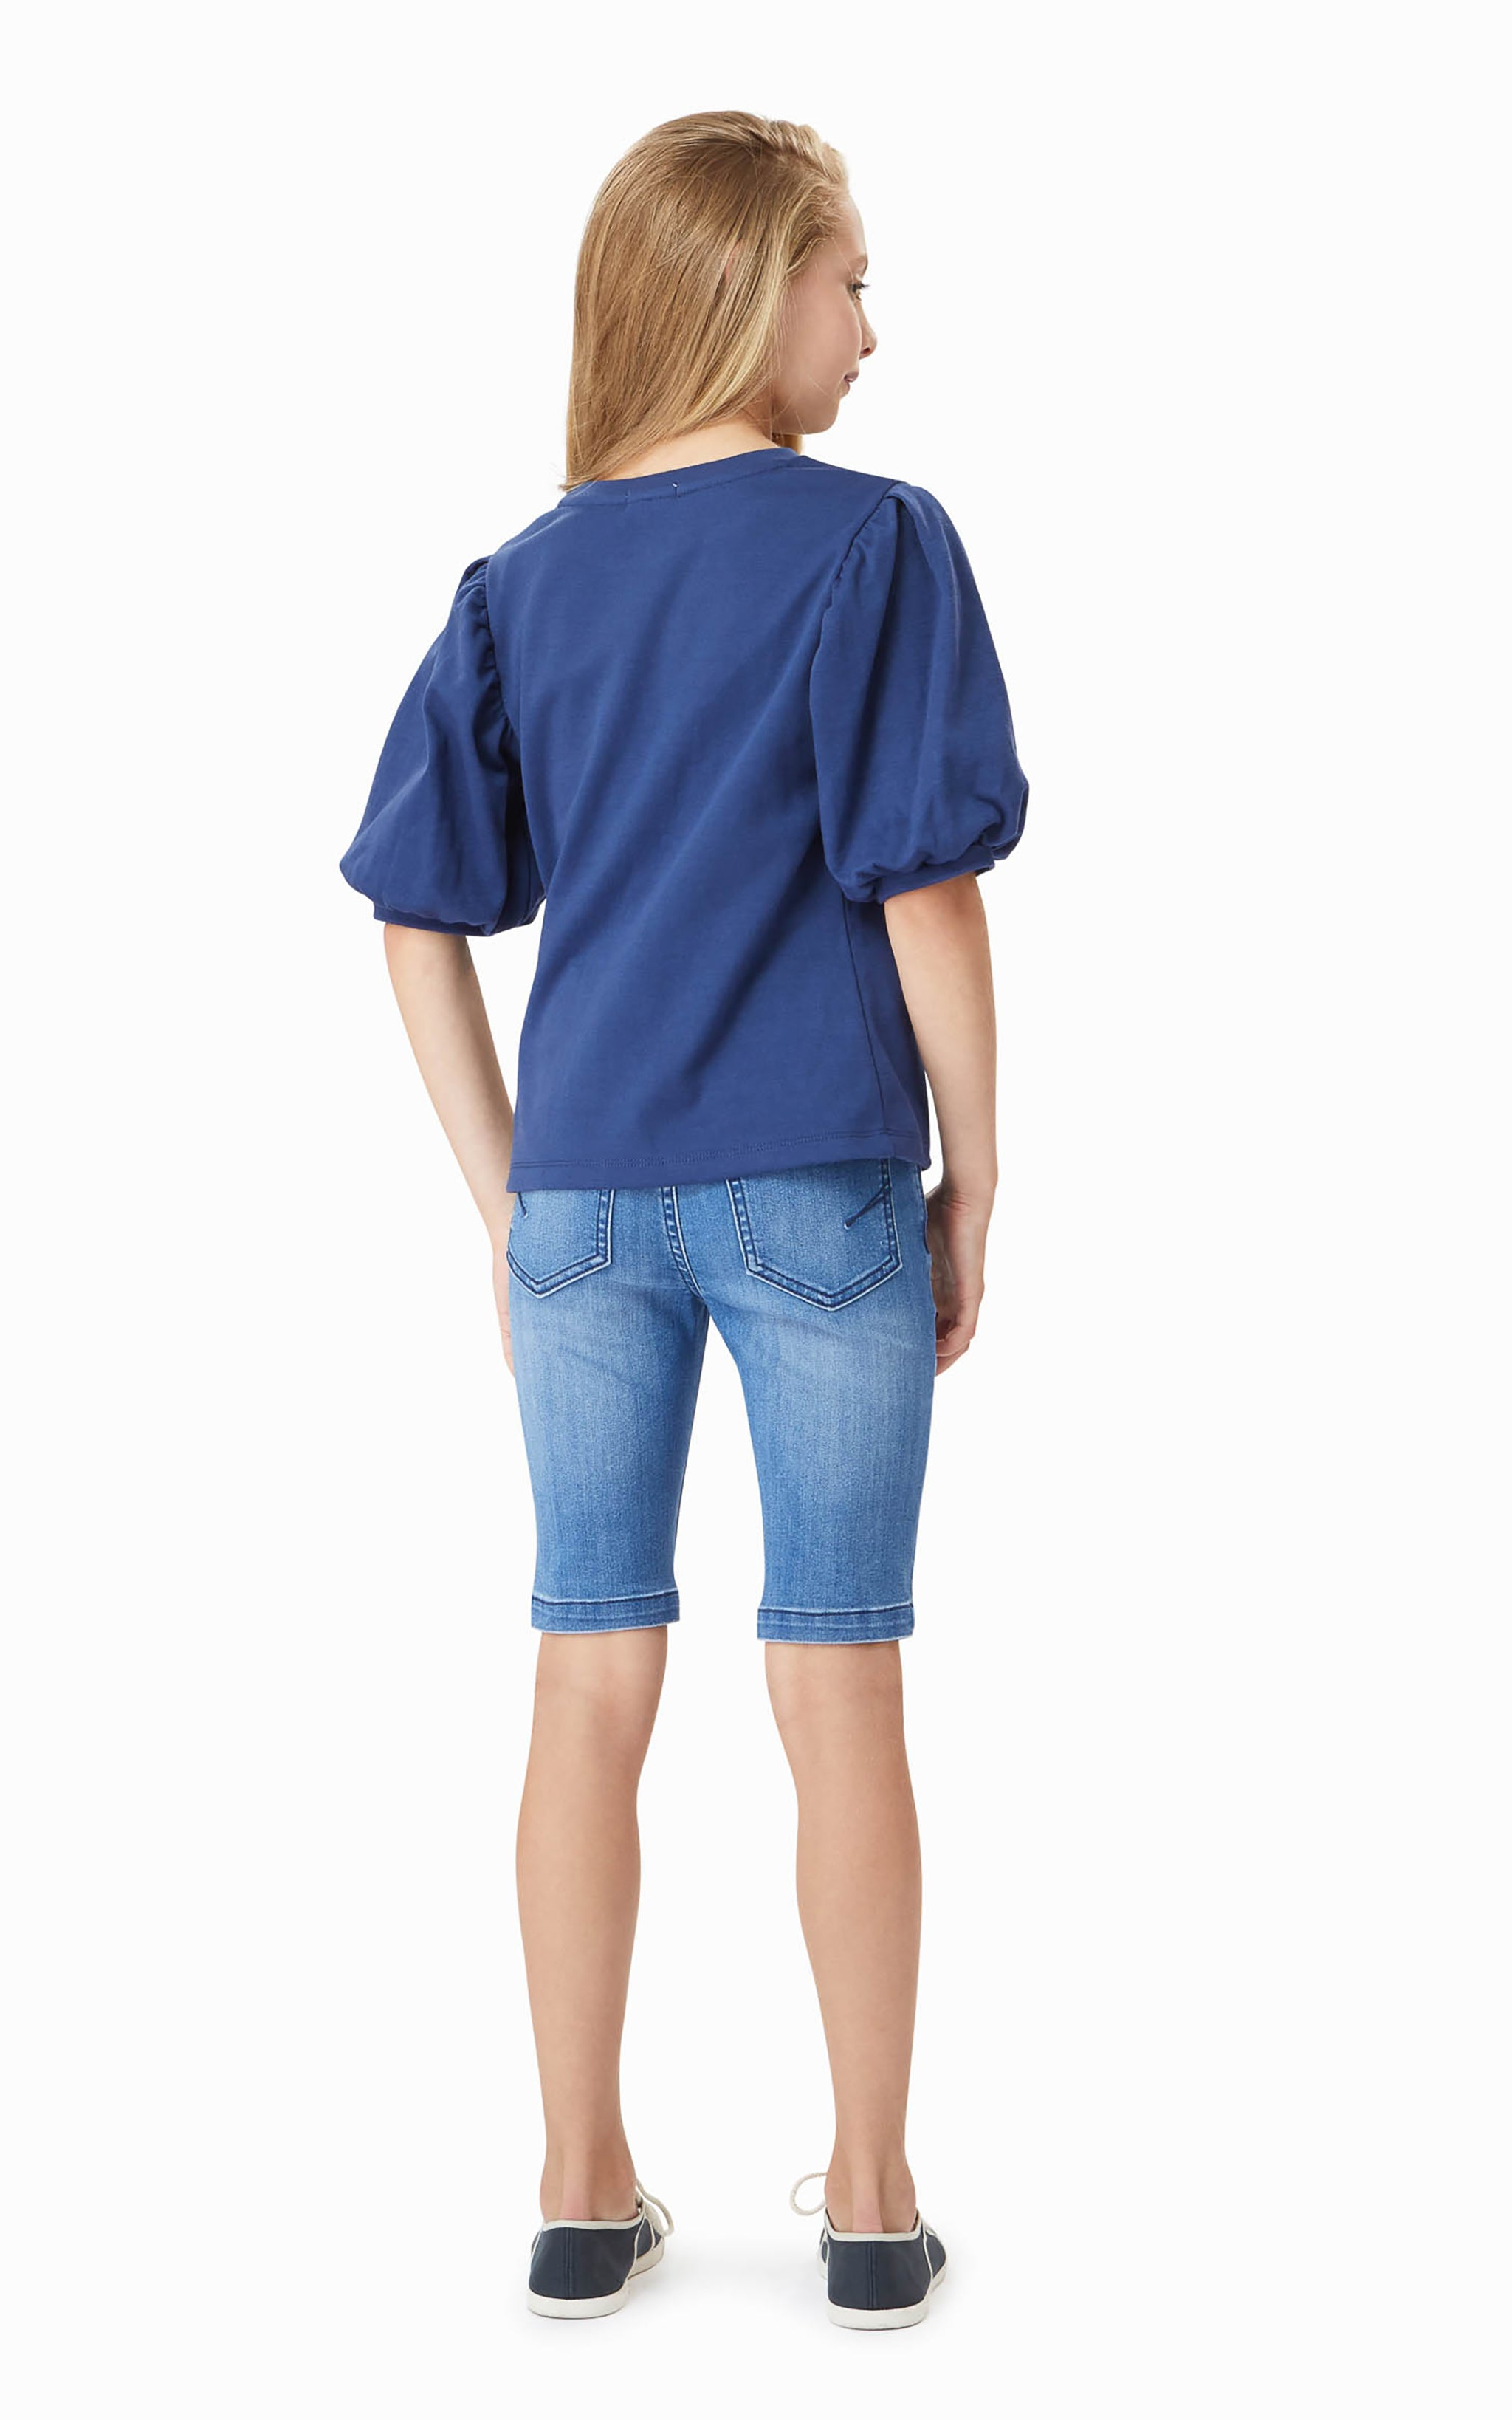 Aadhya Balloon Sleeve Top | 4-6X - Habitual